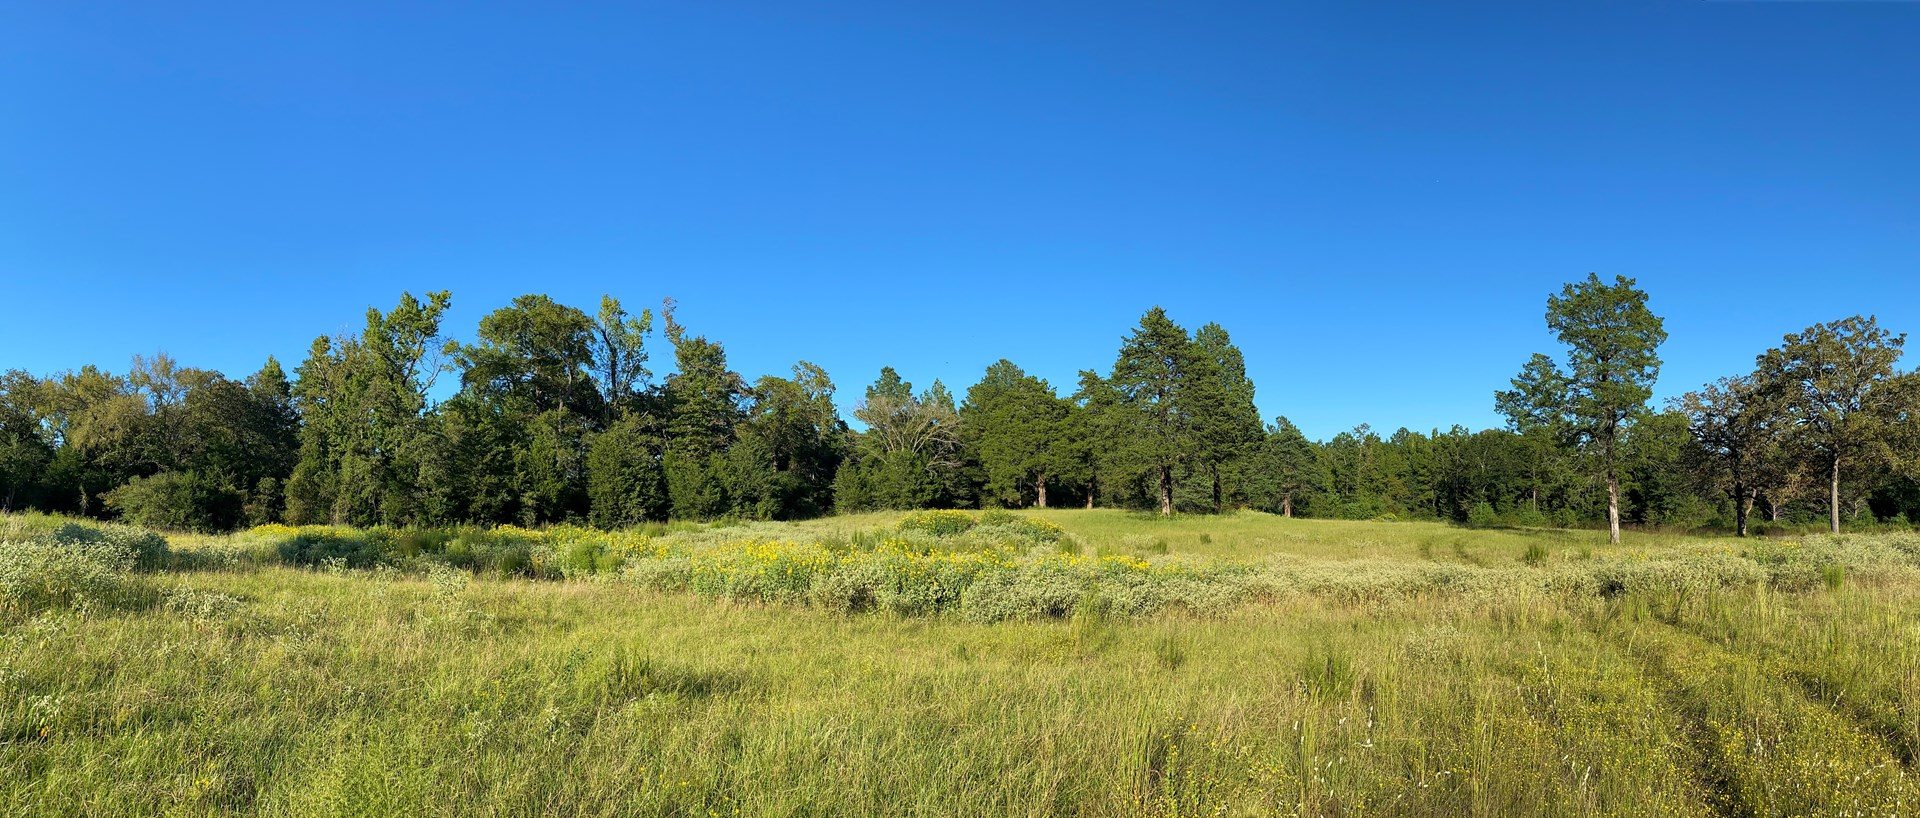 HOMESITE WITH MATURE TREES ON ACREAGE